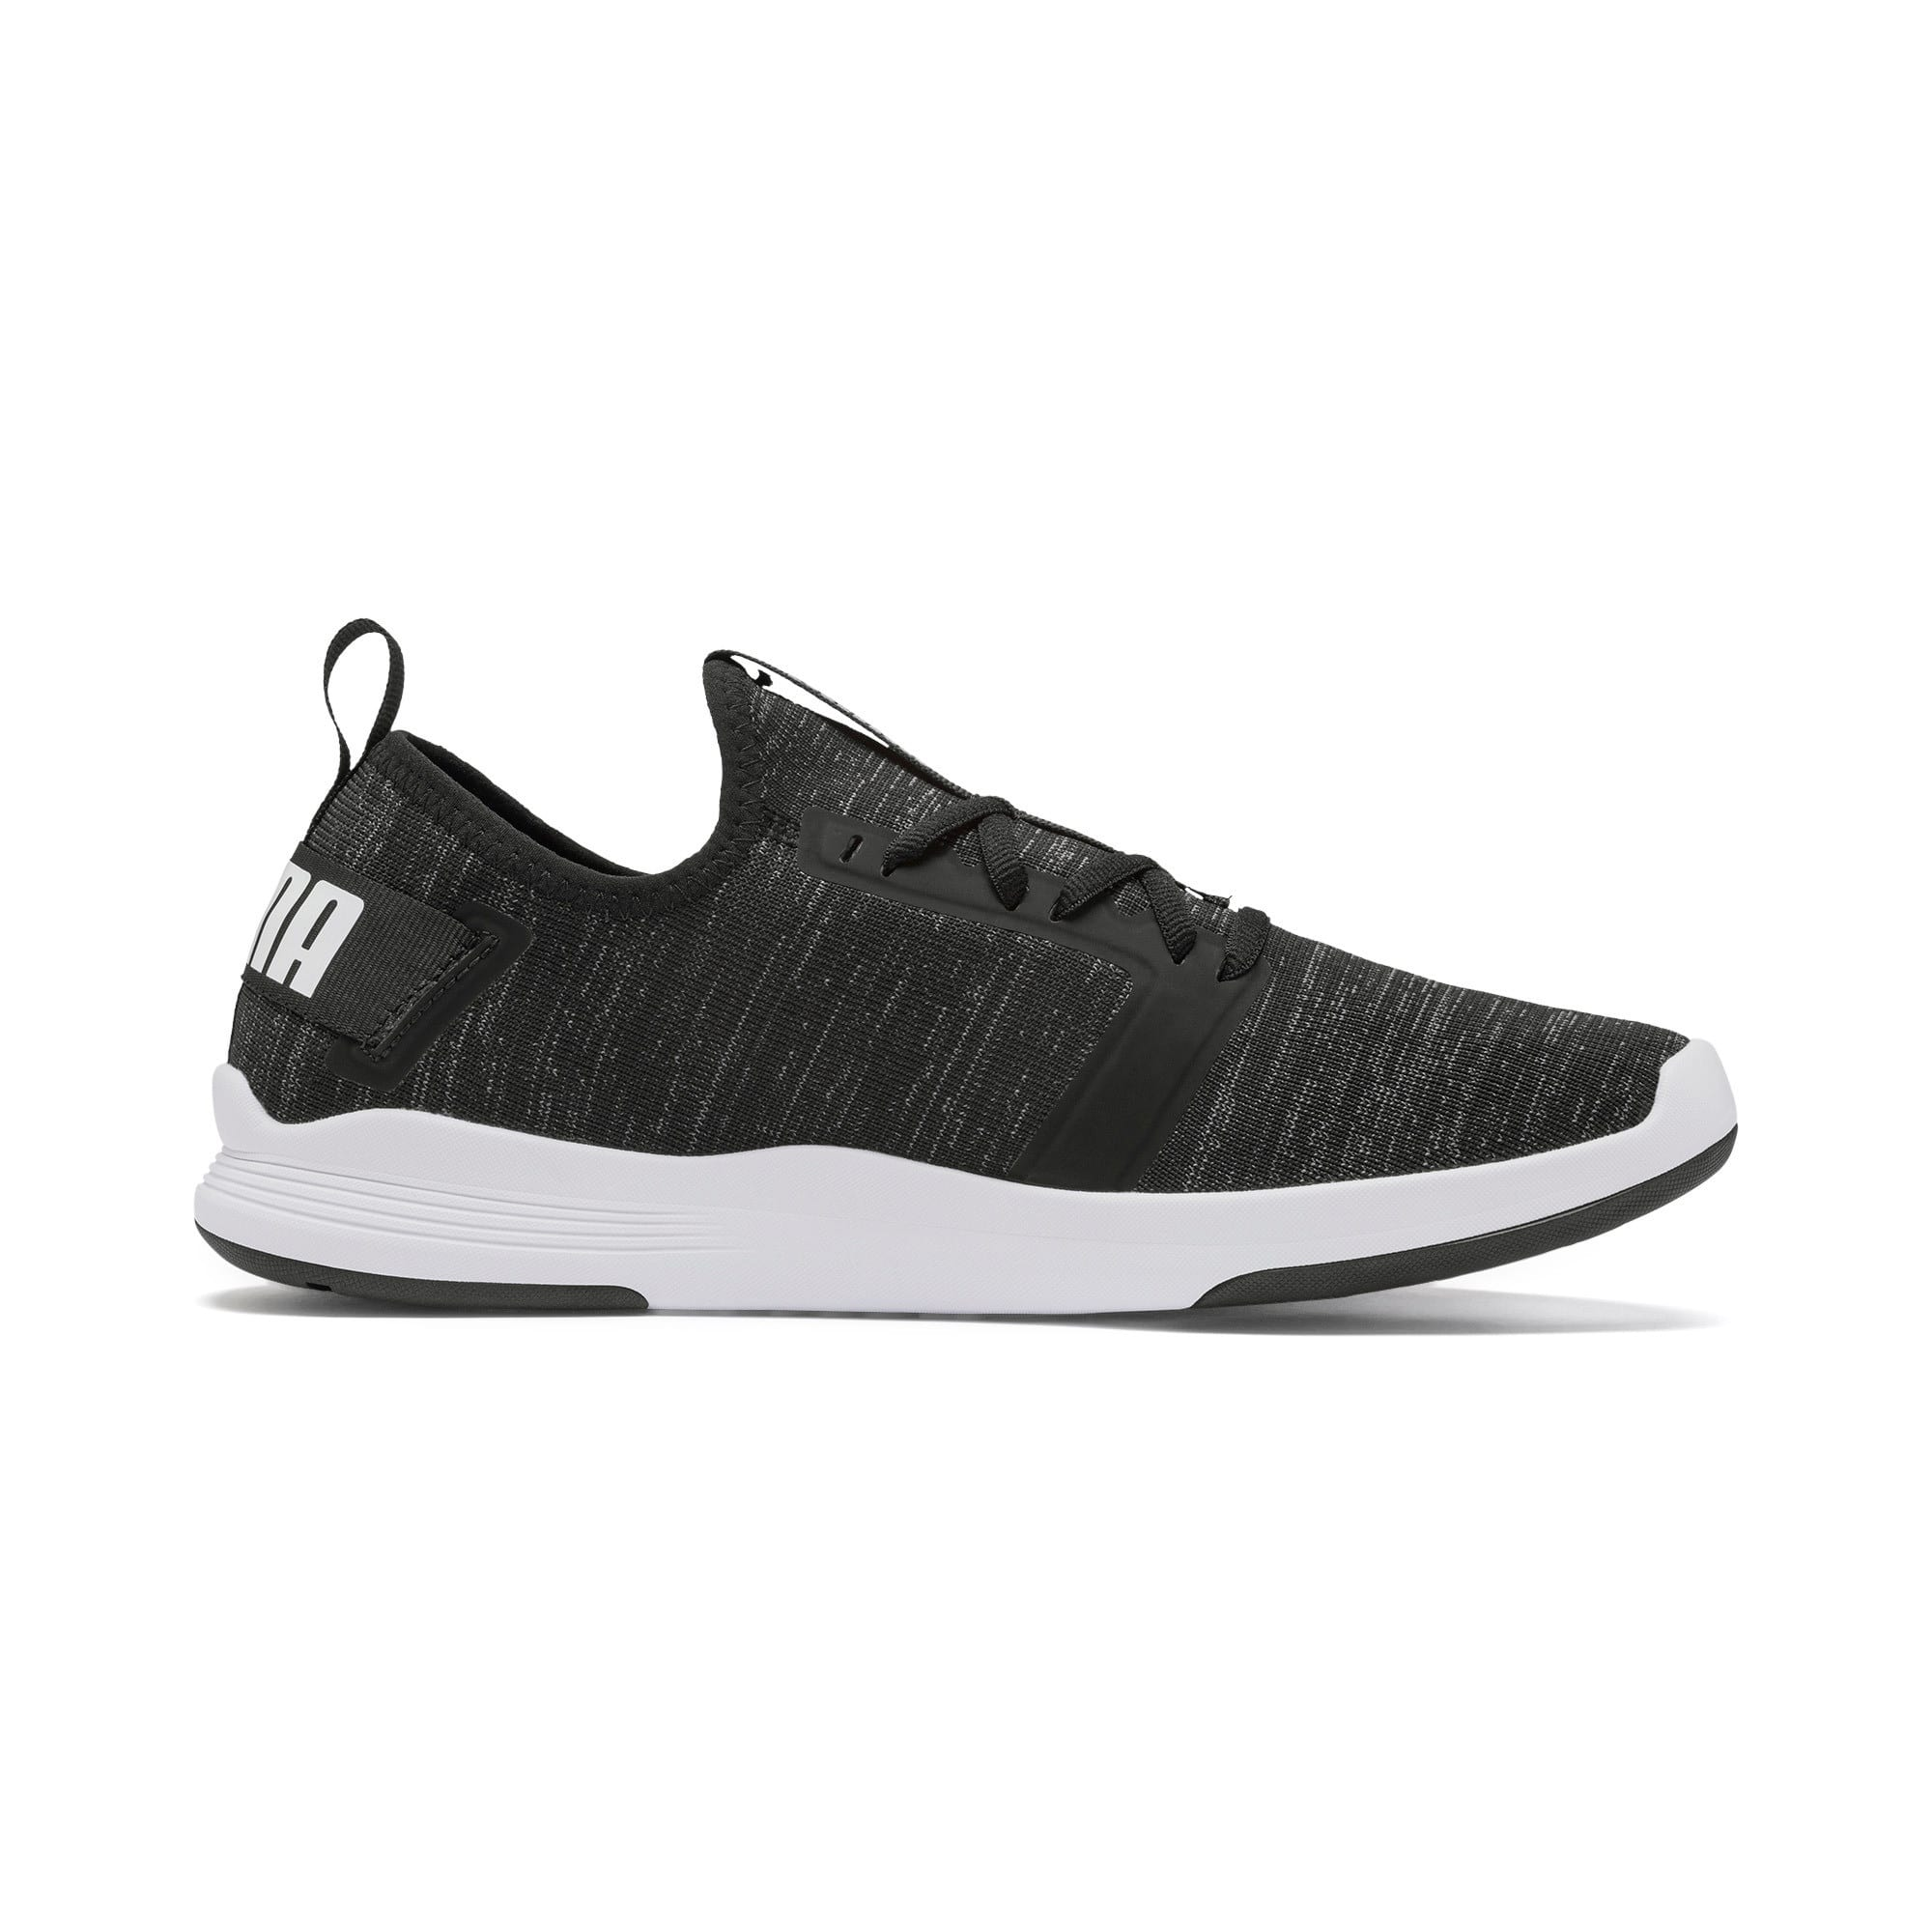 Thumbnail 7 of IGNITE Contender Knit Men's Running Shoes, Puma Black-Puma White, medium-IND